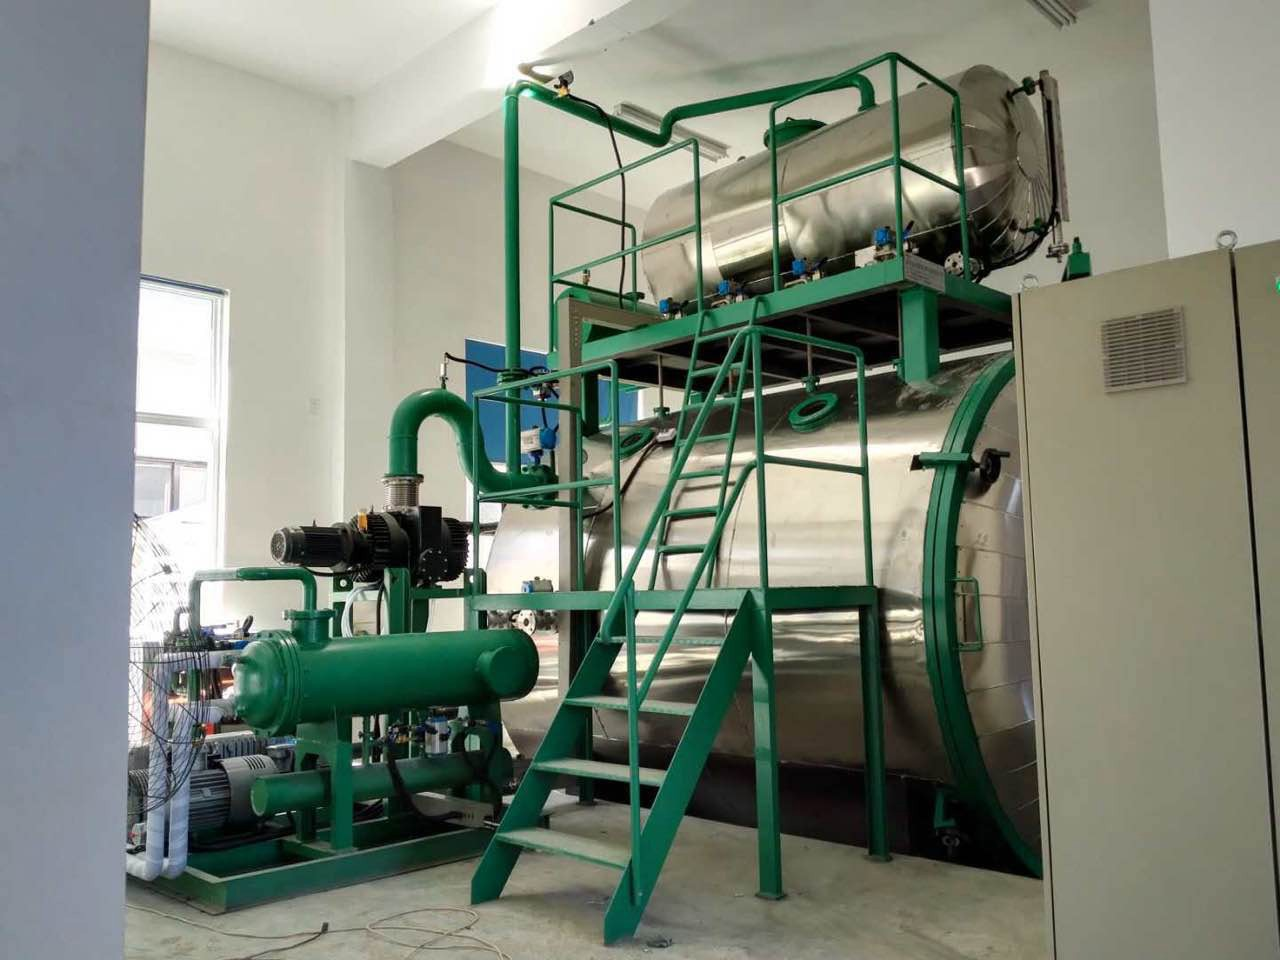 Vacuum drying For Transformer Manufacturers, Vacuum drying For Transformer Factory, Supply Vacuum drying For Transformer